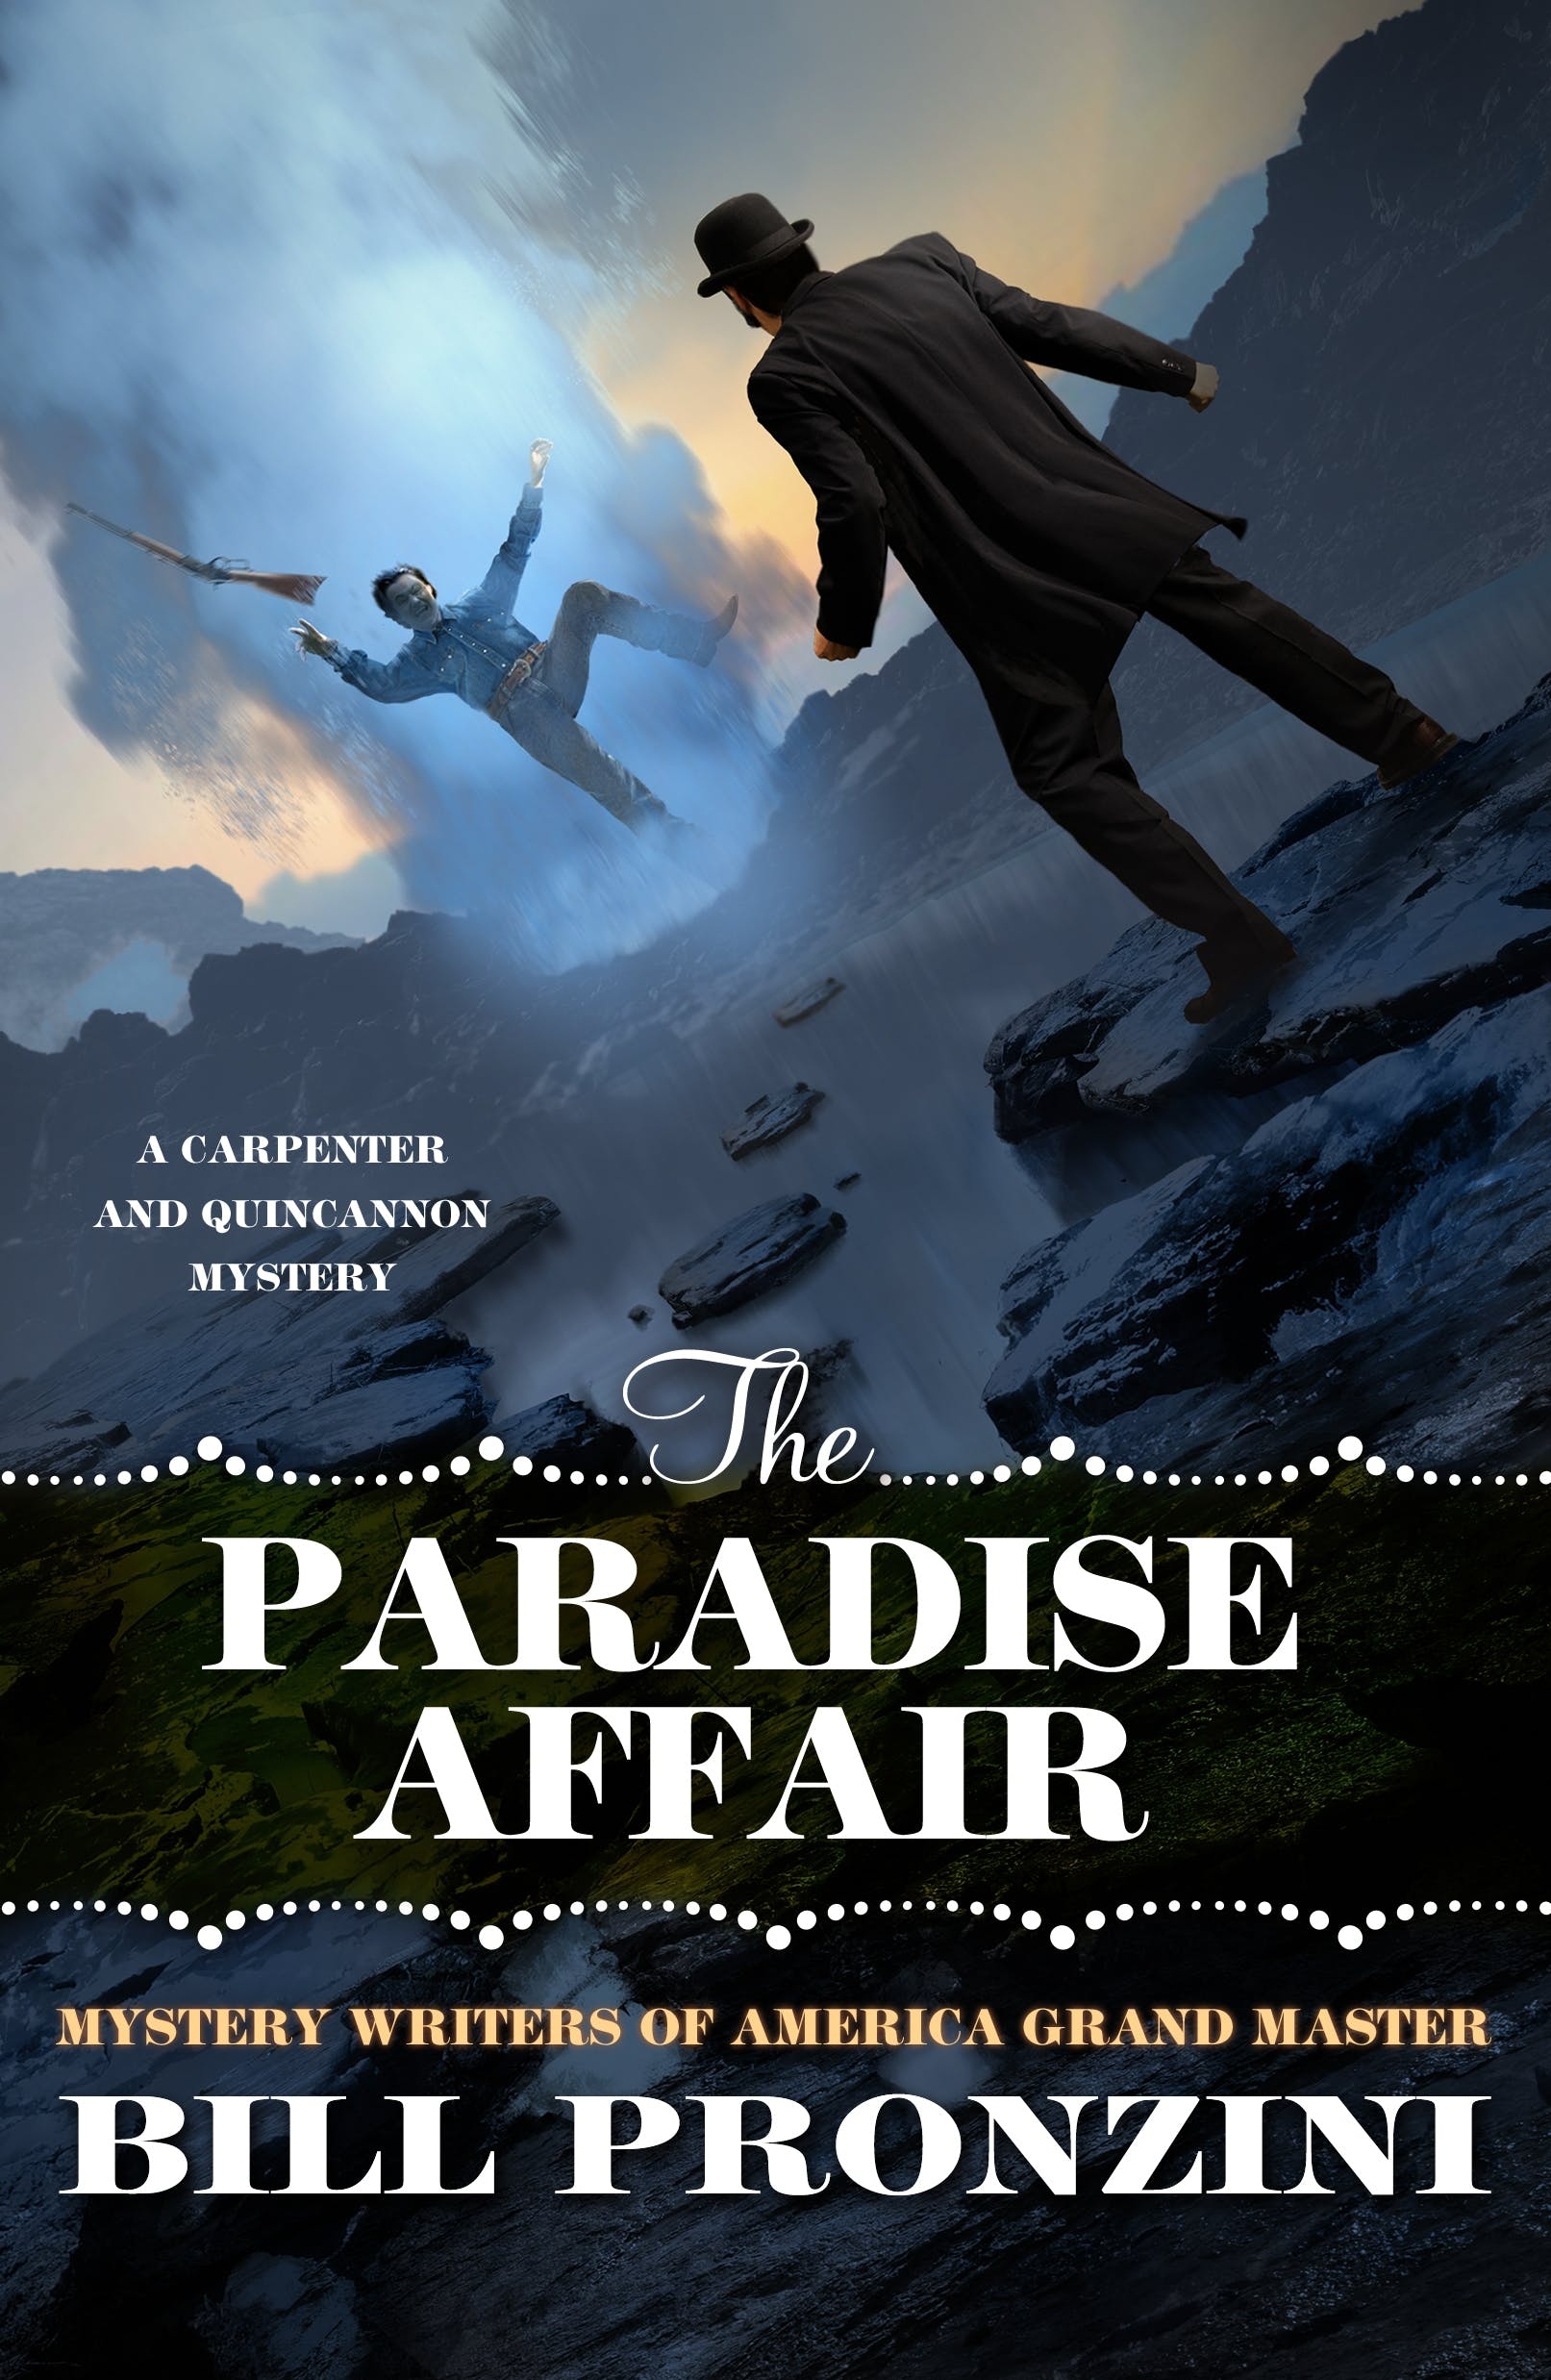 Image of The Paradise Affair